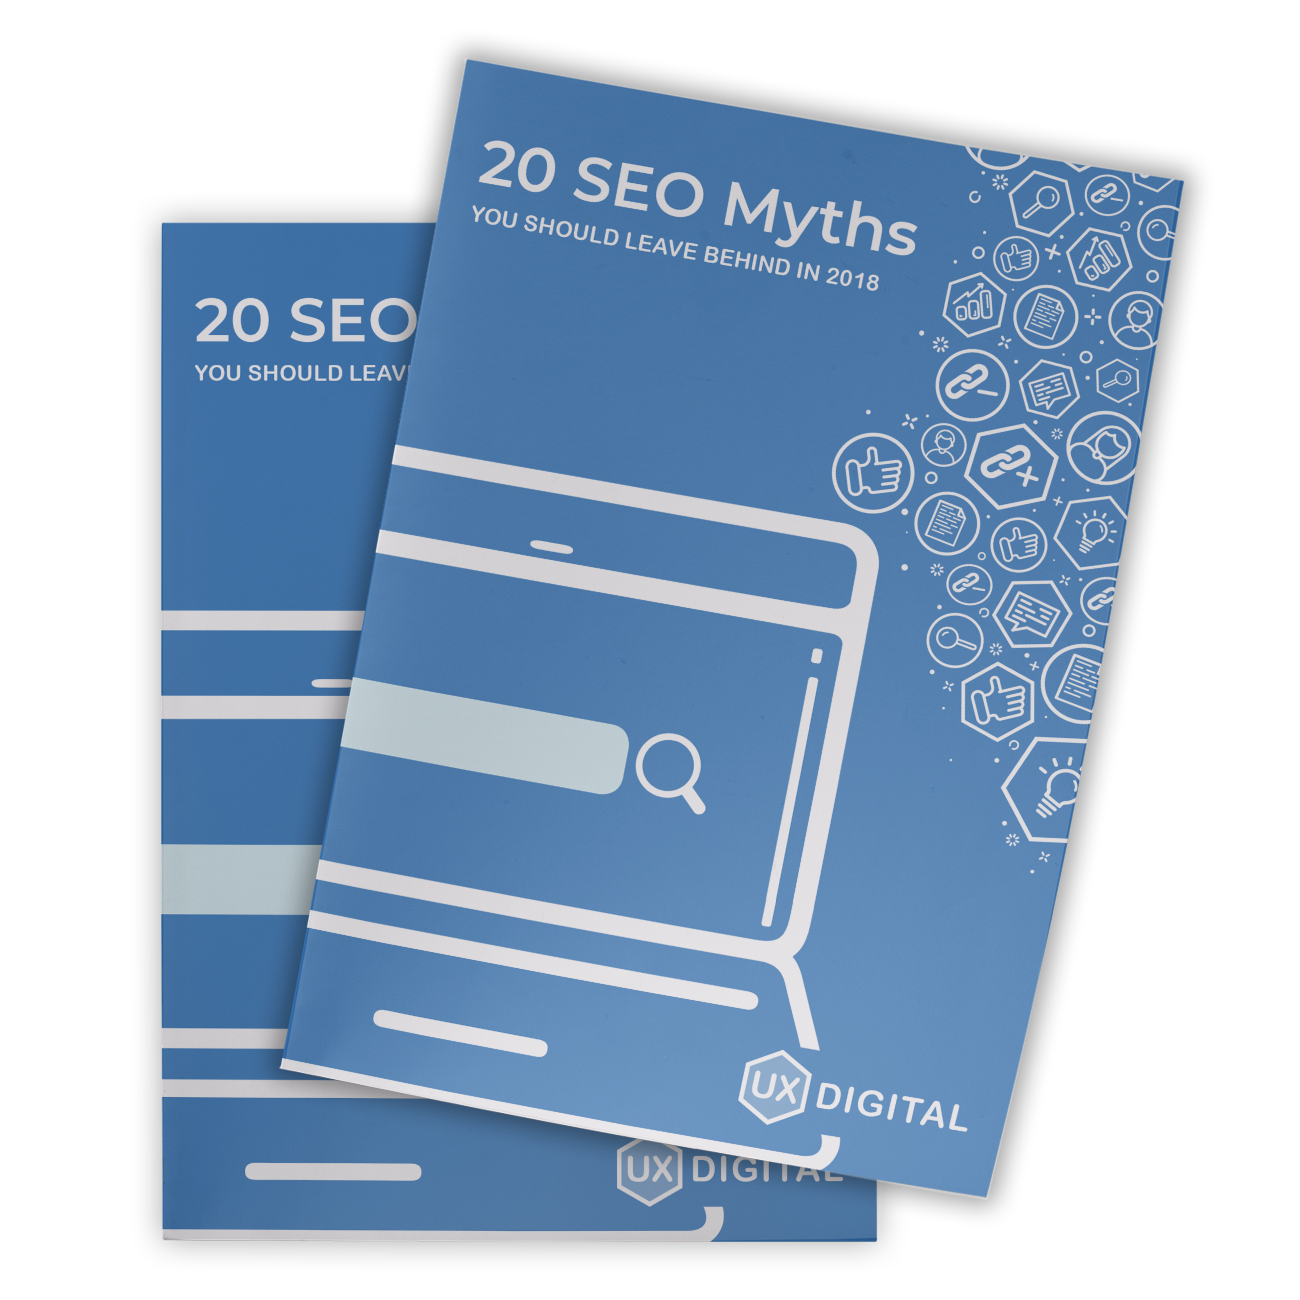 20-SEO-Myths-2018-eGuide-M